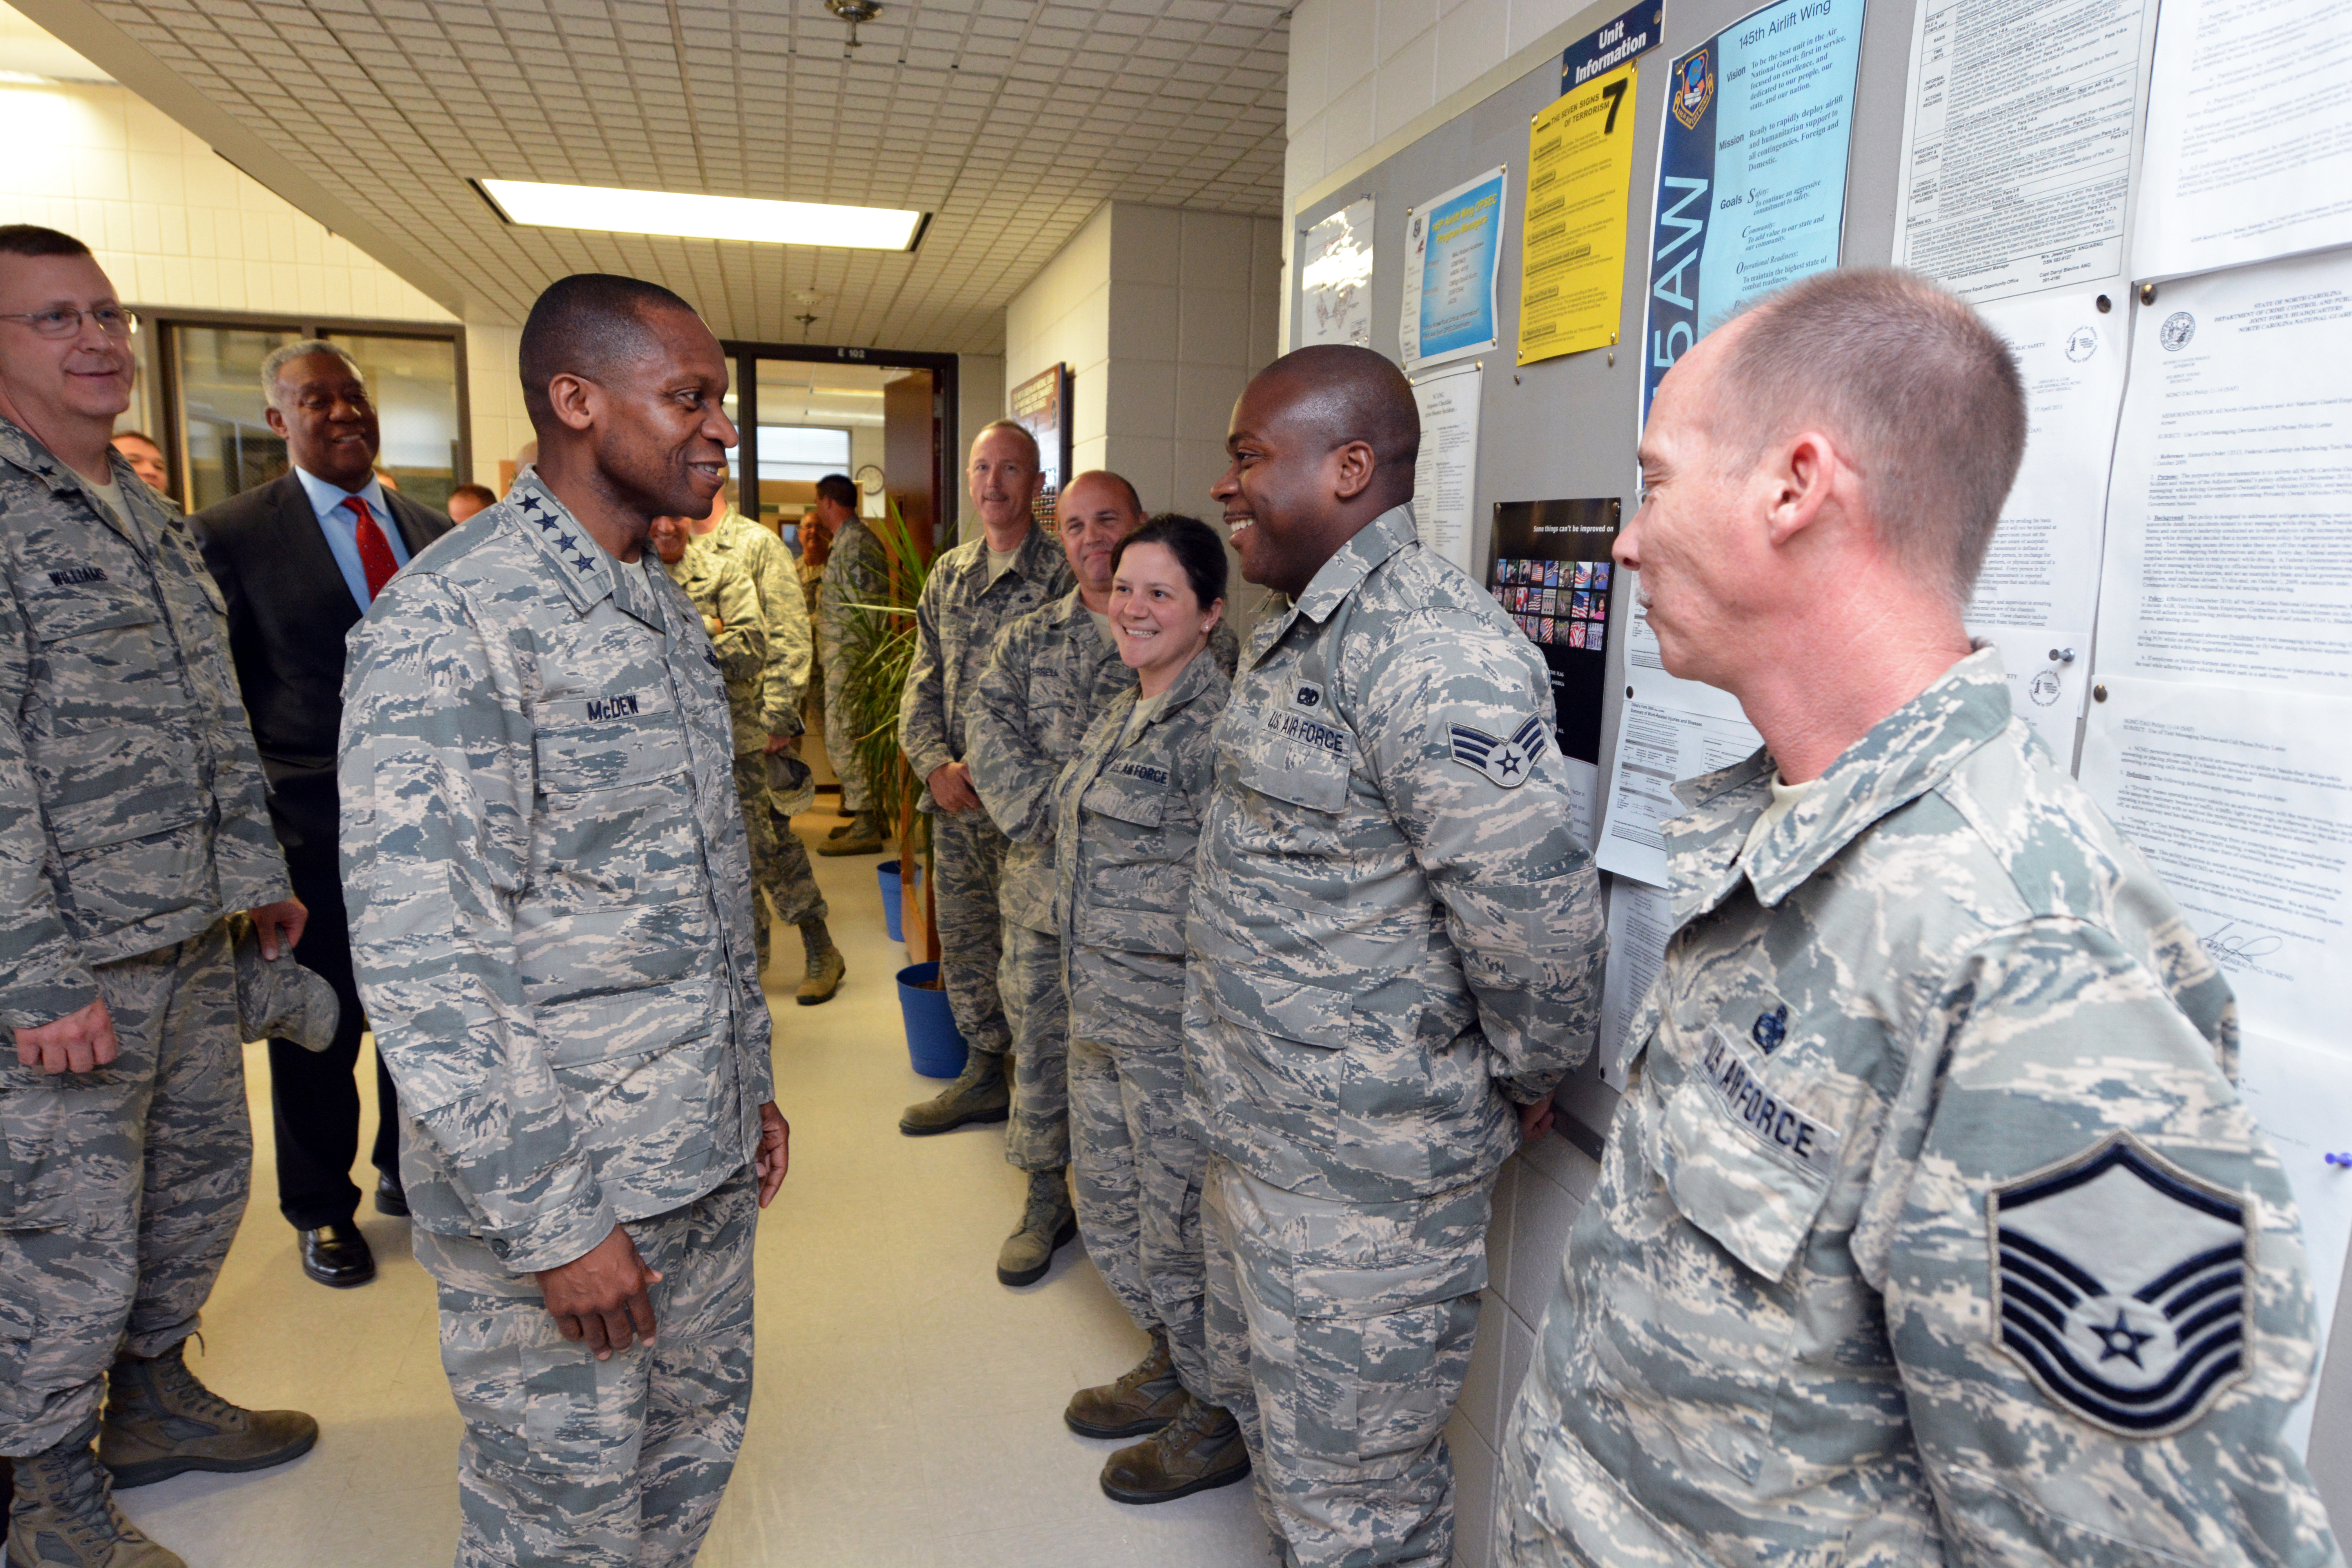 File:AMC visits North Carolina Air National Guard 140923-Z-FY745-027